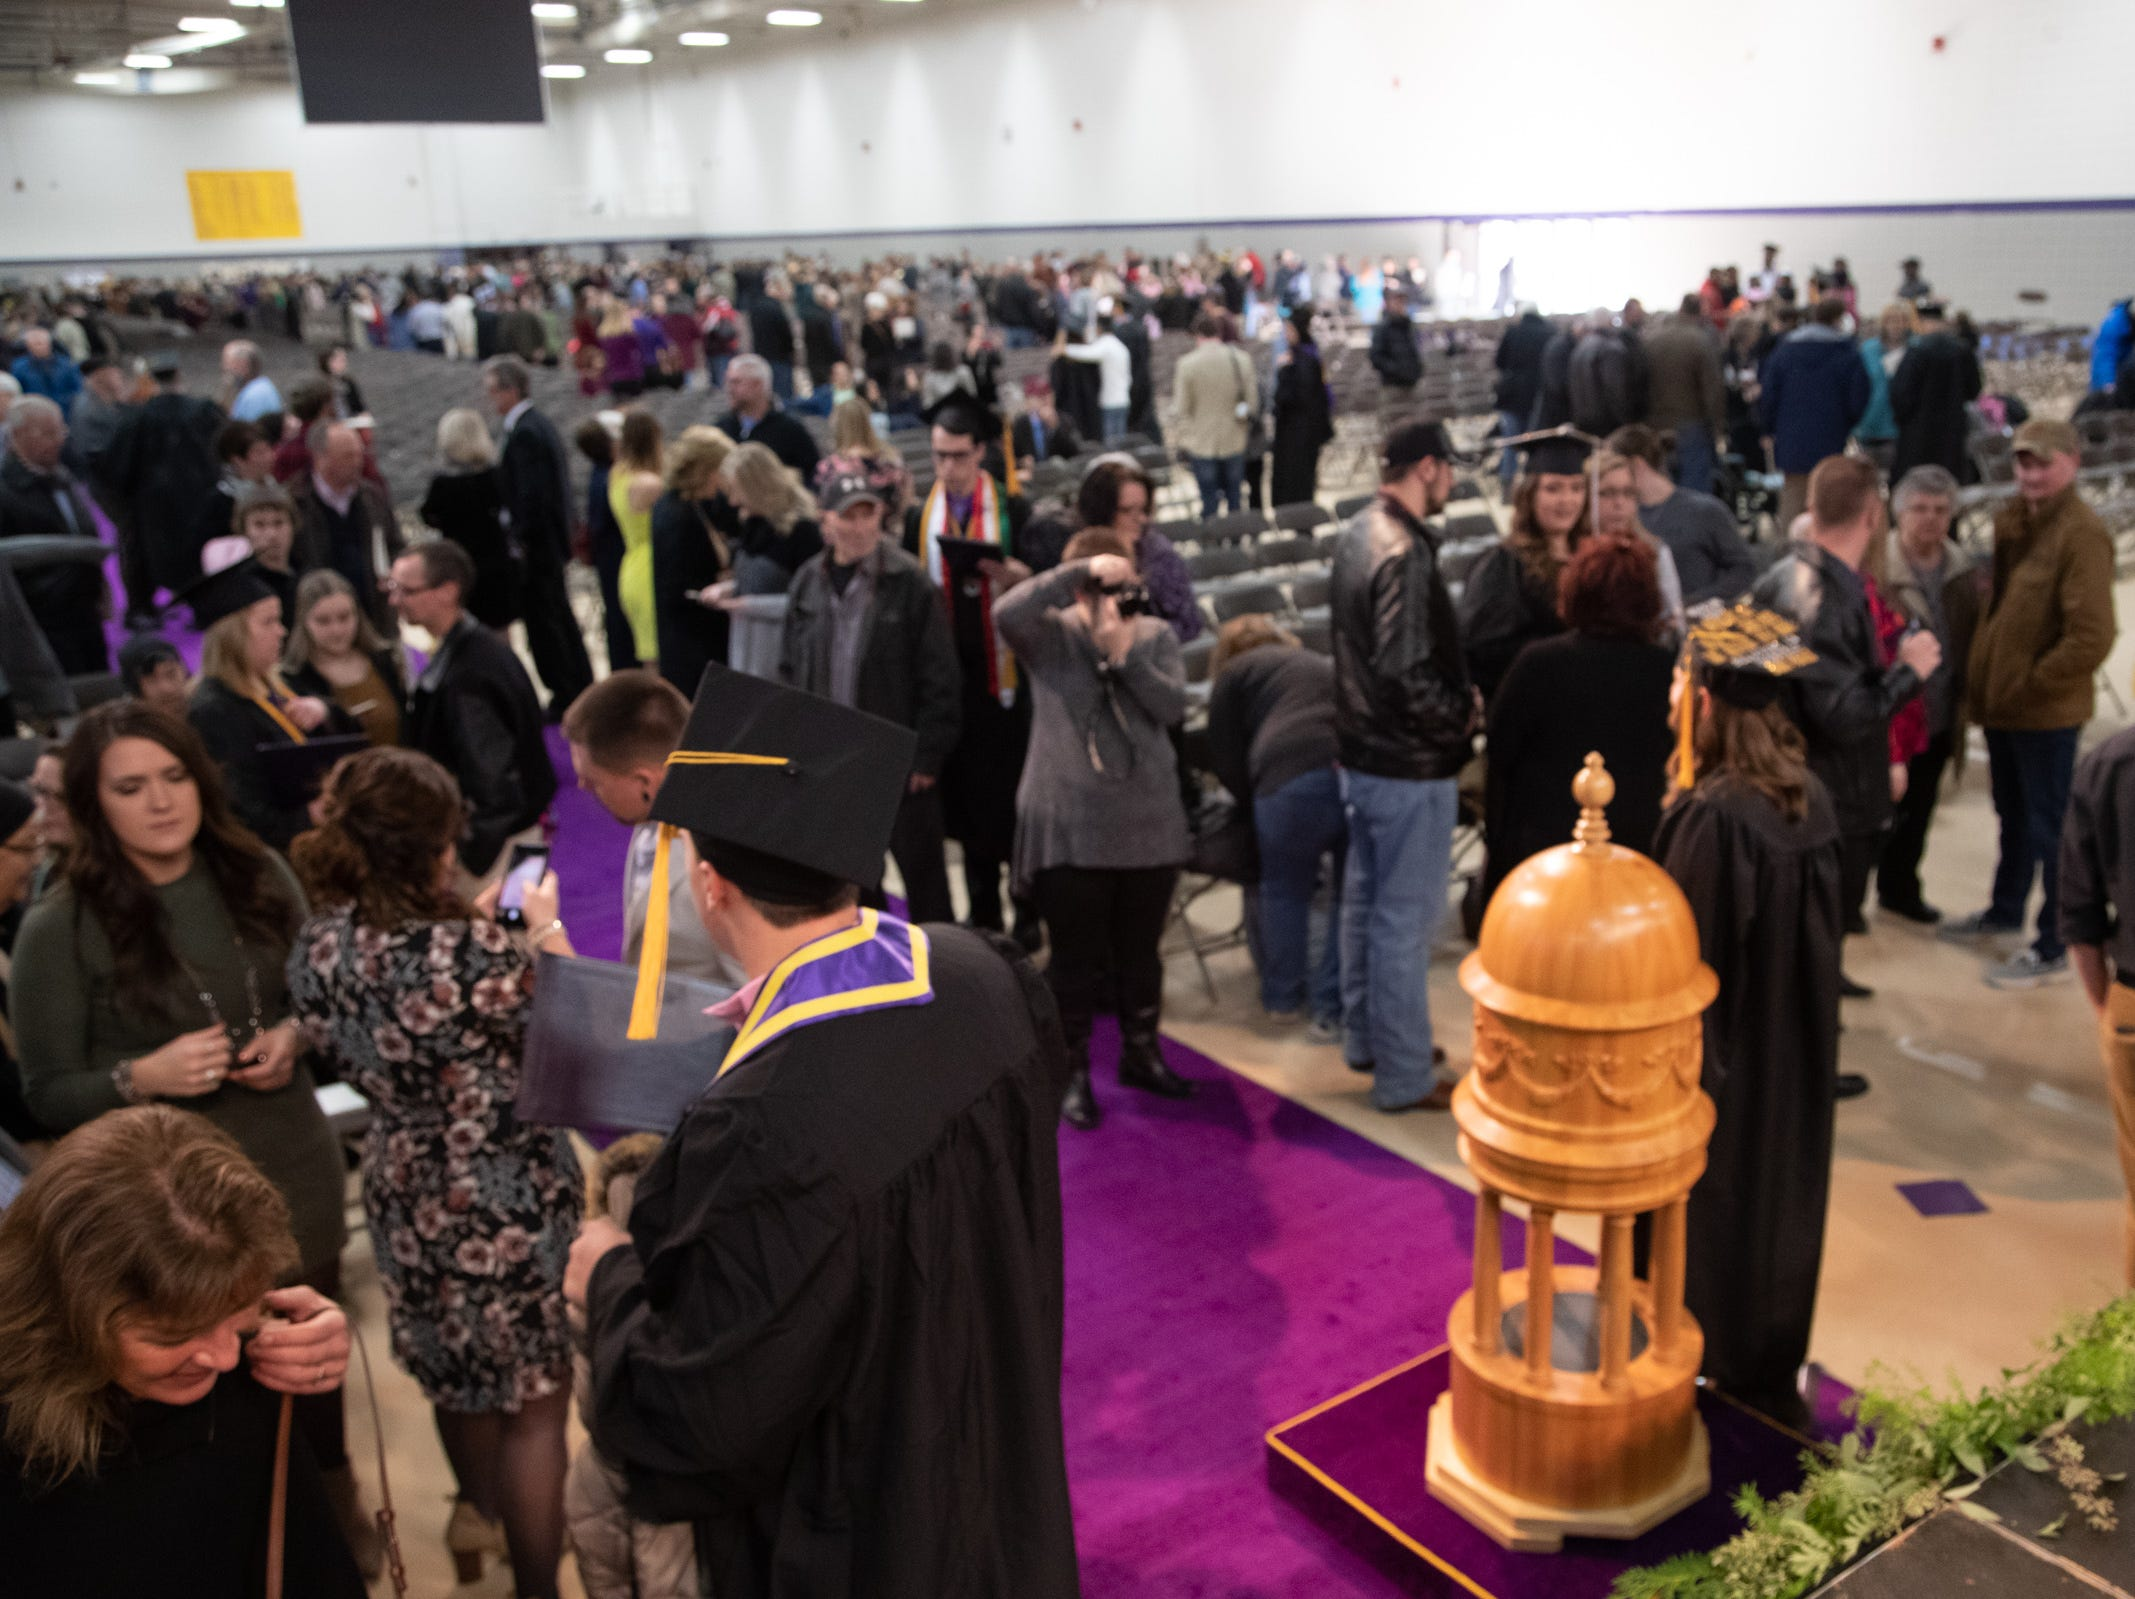 Faculty, graduates and their families mingle after the 2018 winter commencement ceremony at the University of Wisconsin-Stevens Point on Saturday, Dec. 15, 2018, in Stevens Point.